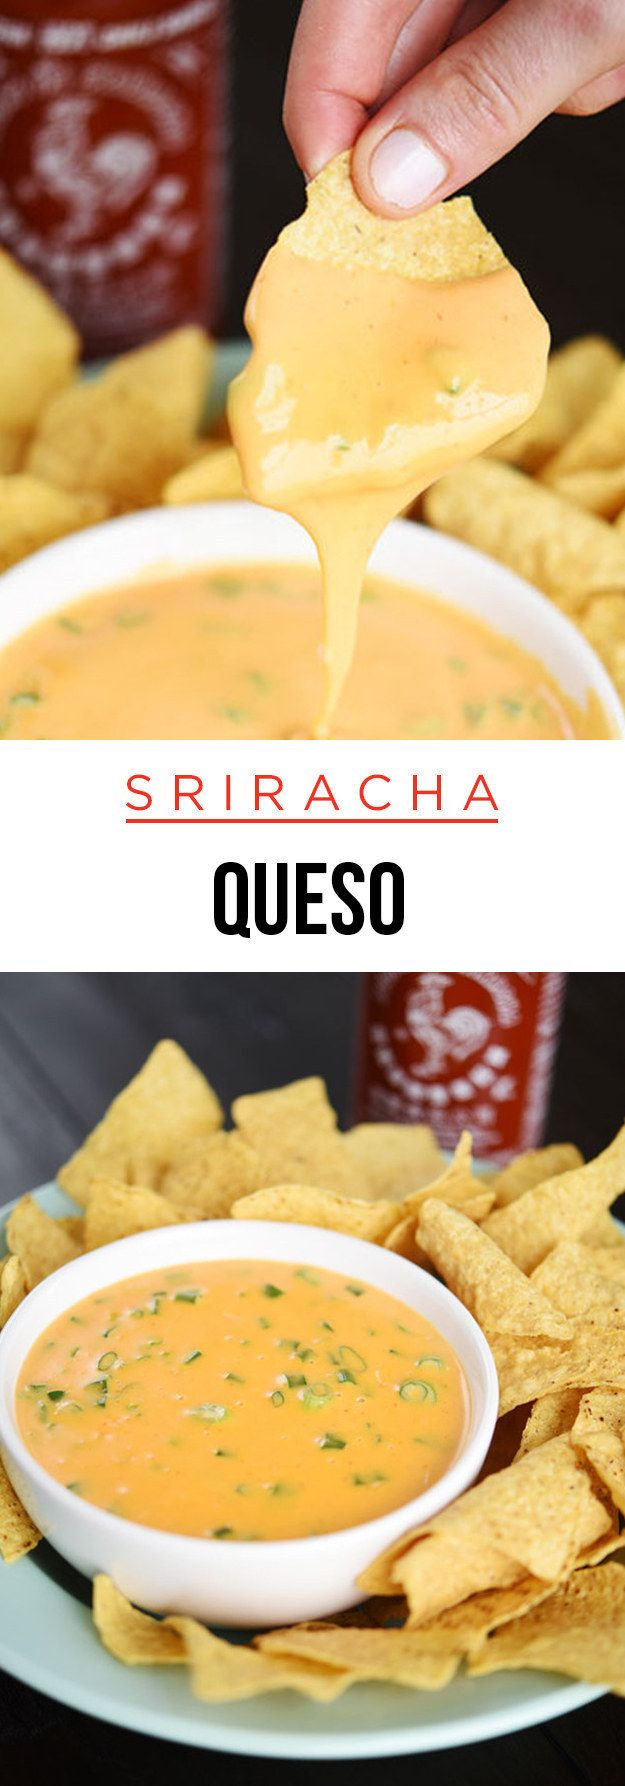 Sriracha Queso - queso dip with a spicy kick!